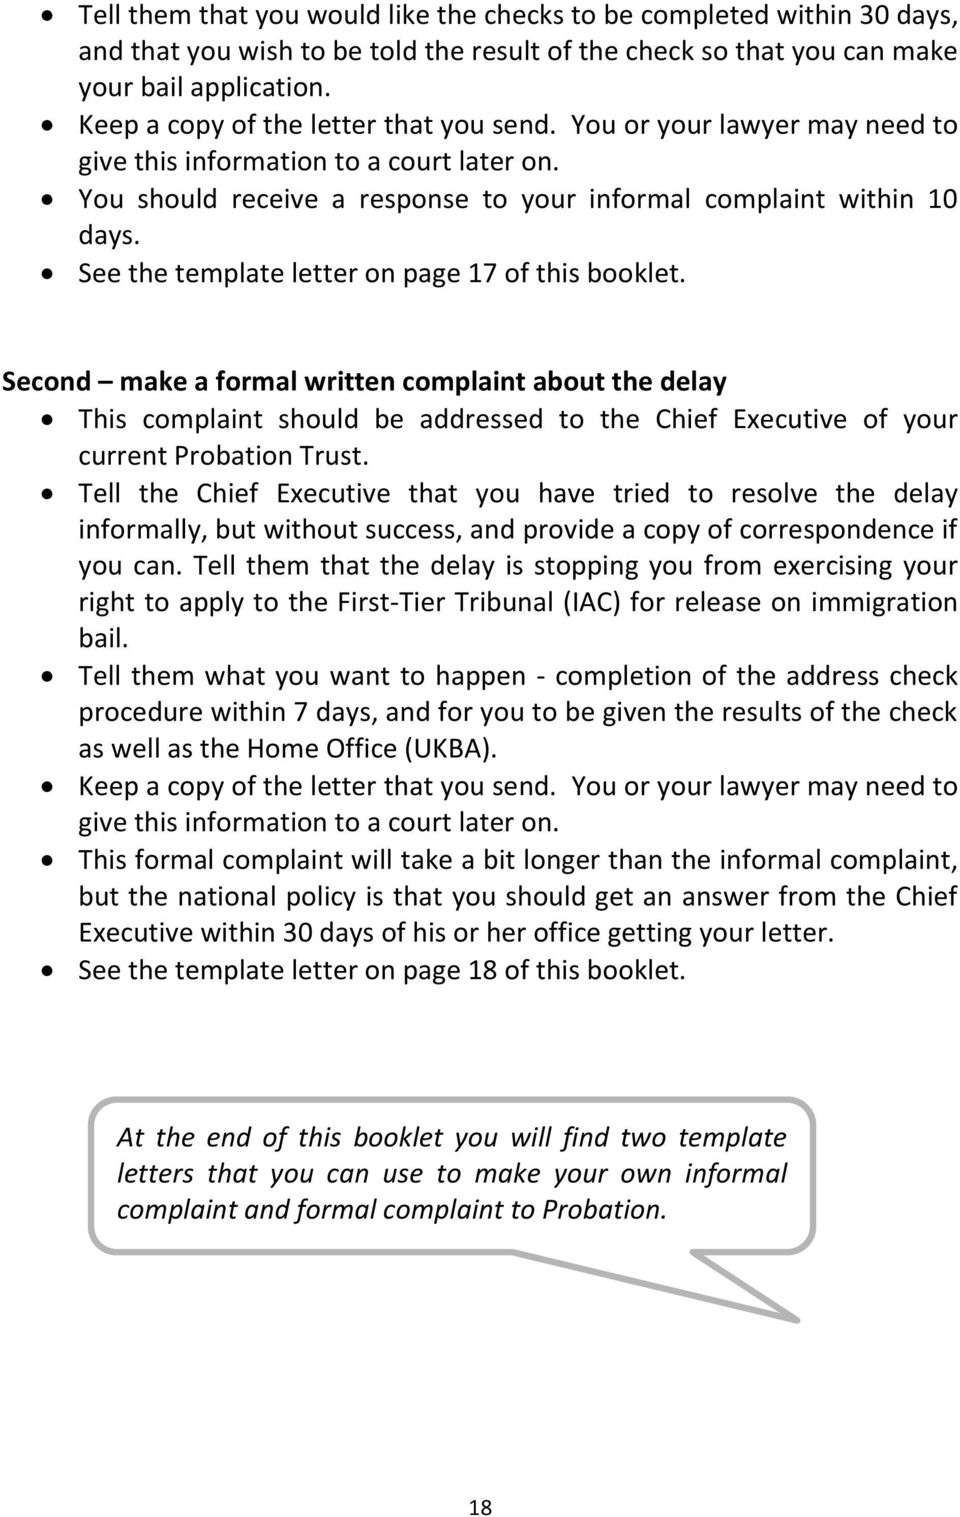 See the template letter on page 17 of this booklet. Second make a formal written complaint about the delay This complaint should be addressed to the Chief Executive of your current Probation Trust.